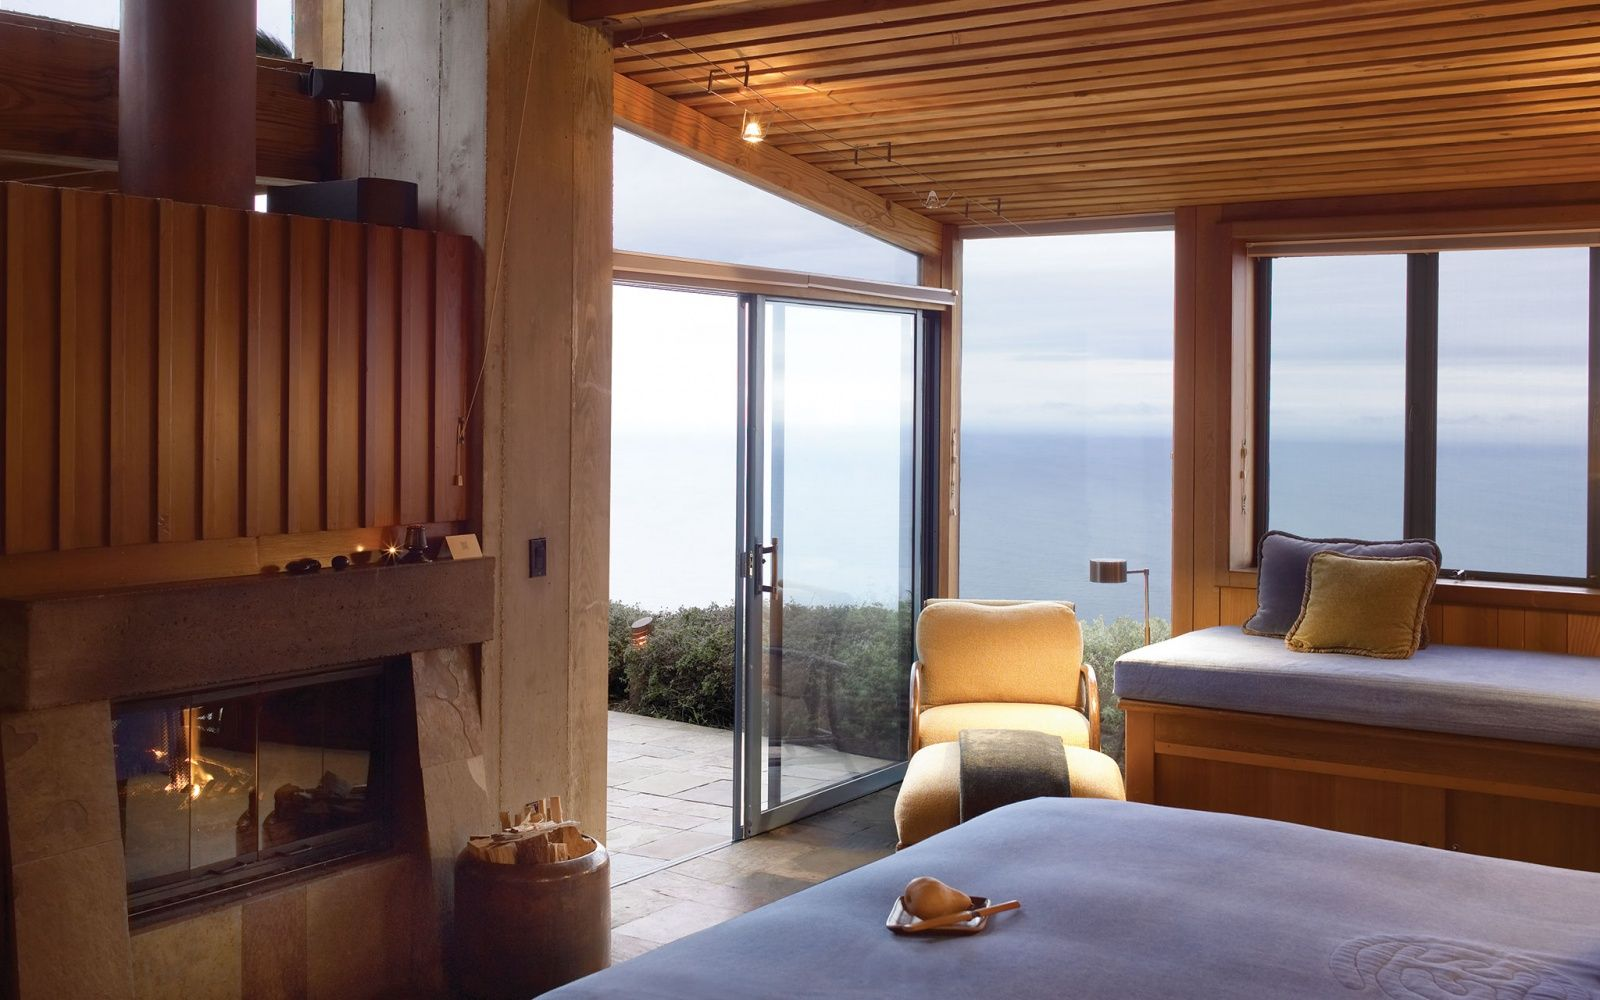 World's Most Romantic Hotels (With images) Post ranch